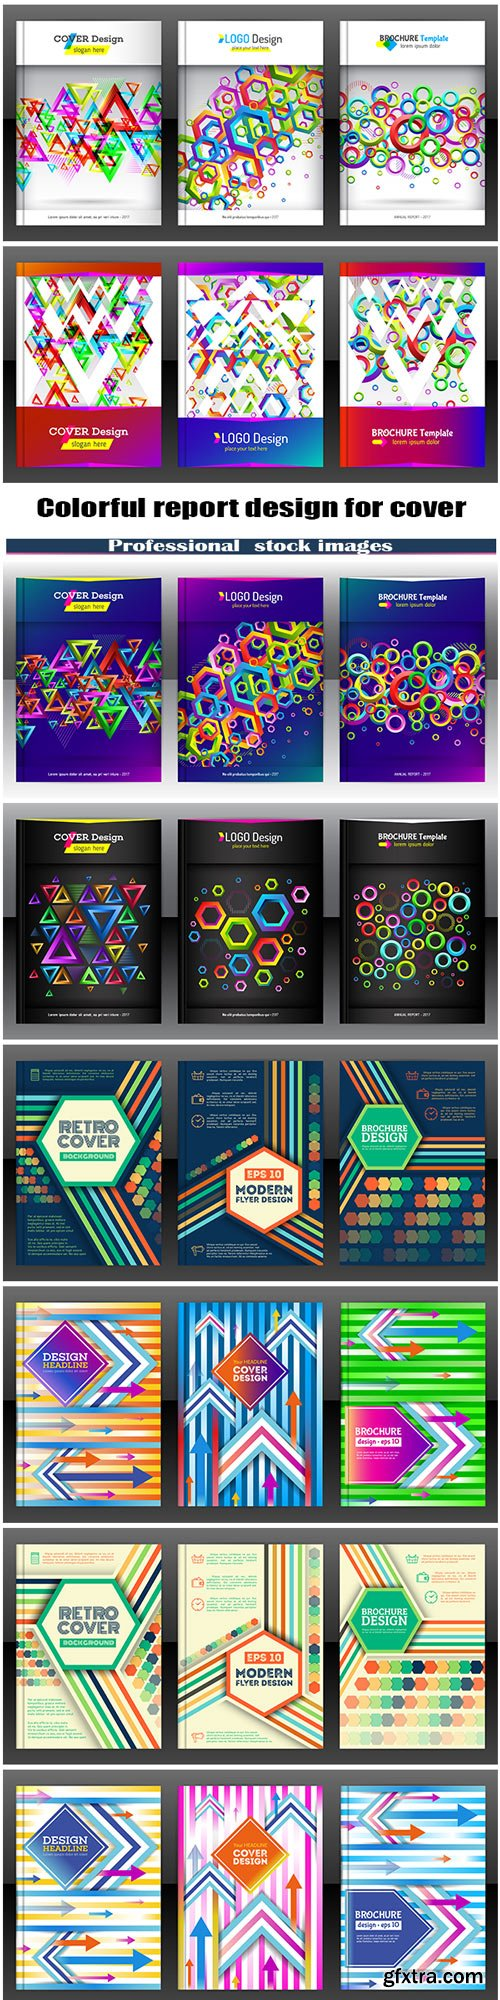 Colorful report design for cover